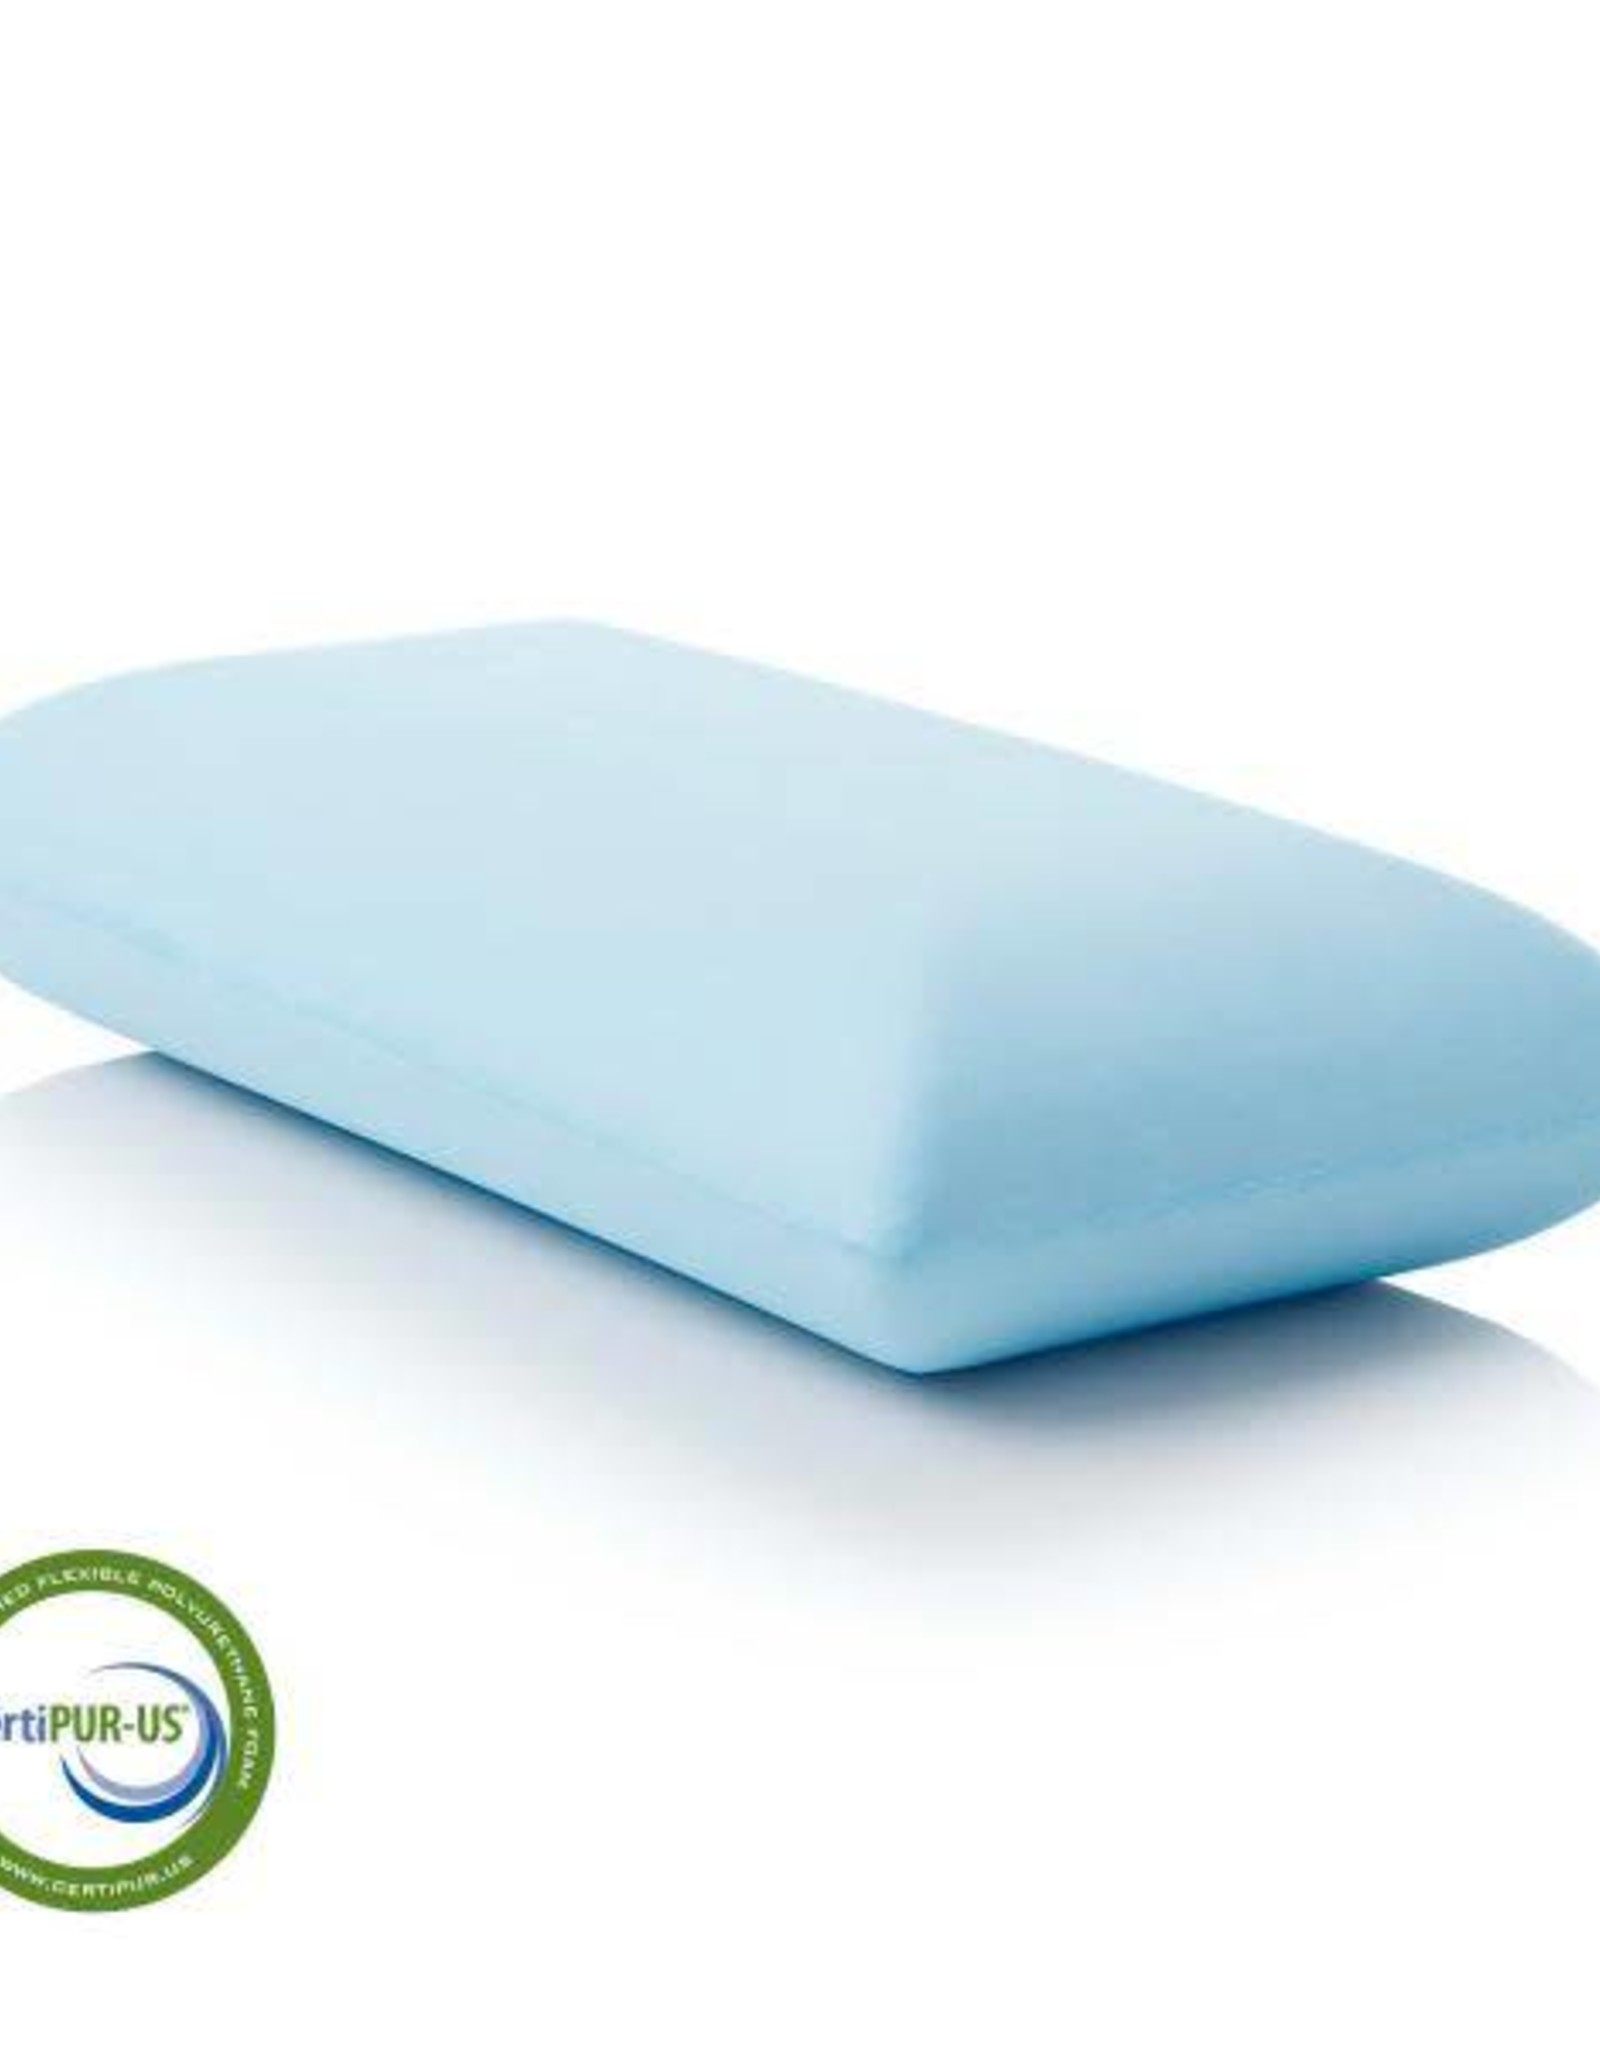 Malouf Z Gel Infused Dough Pillow - Mid Loft